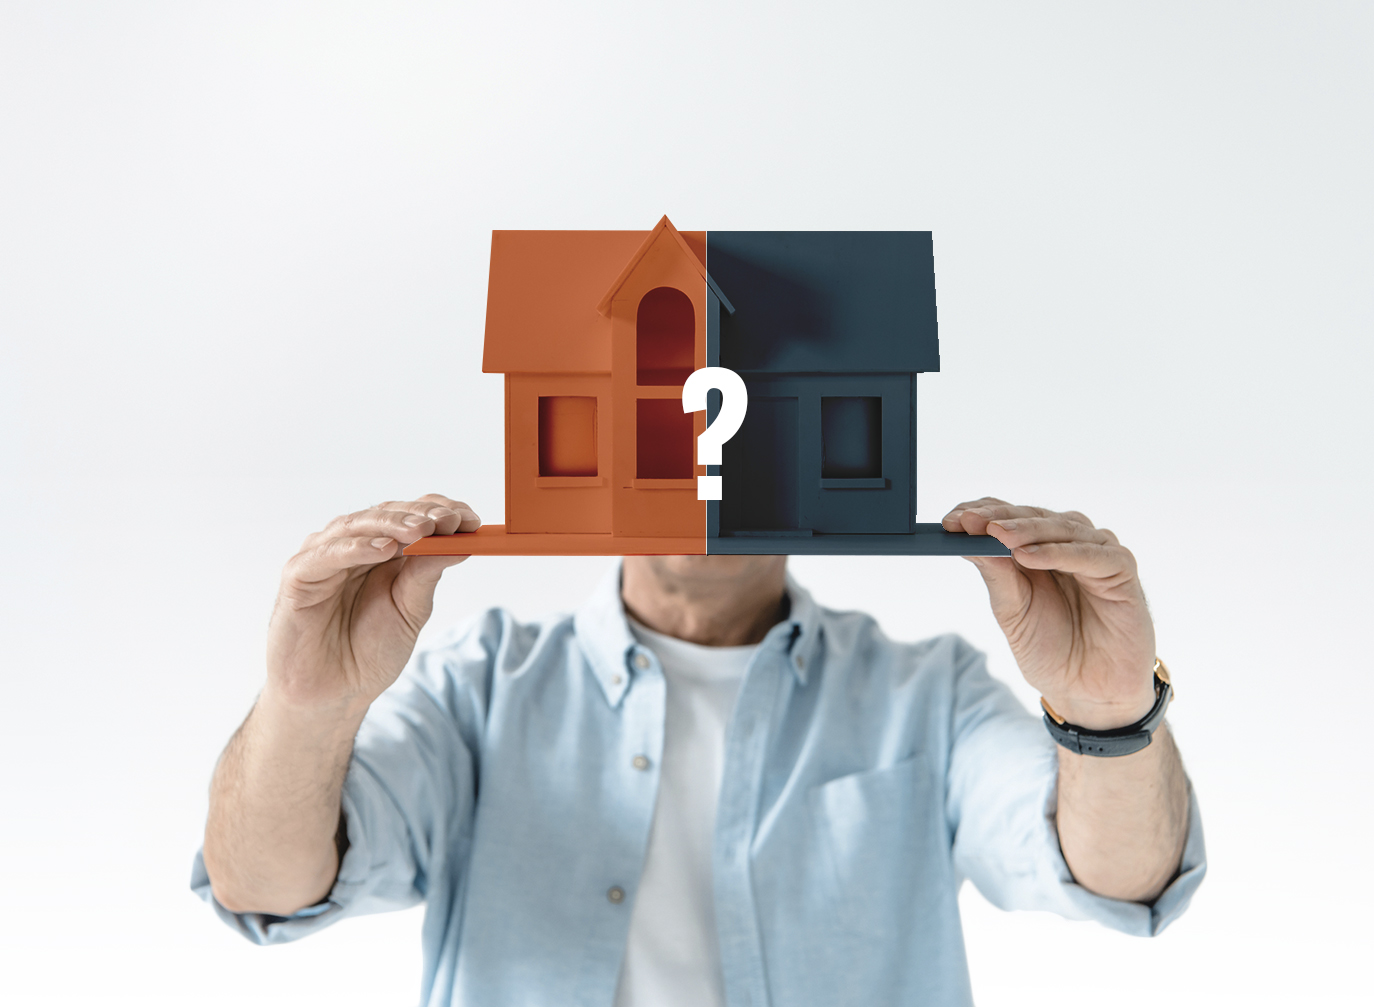 What makes a better investment: Brand new or established properties?